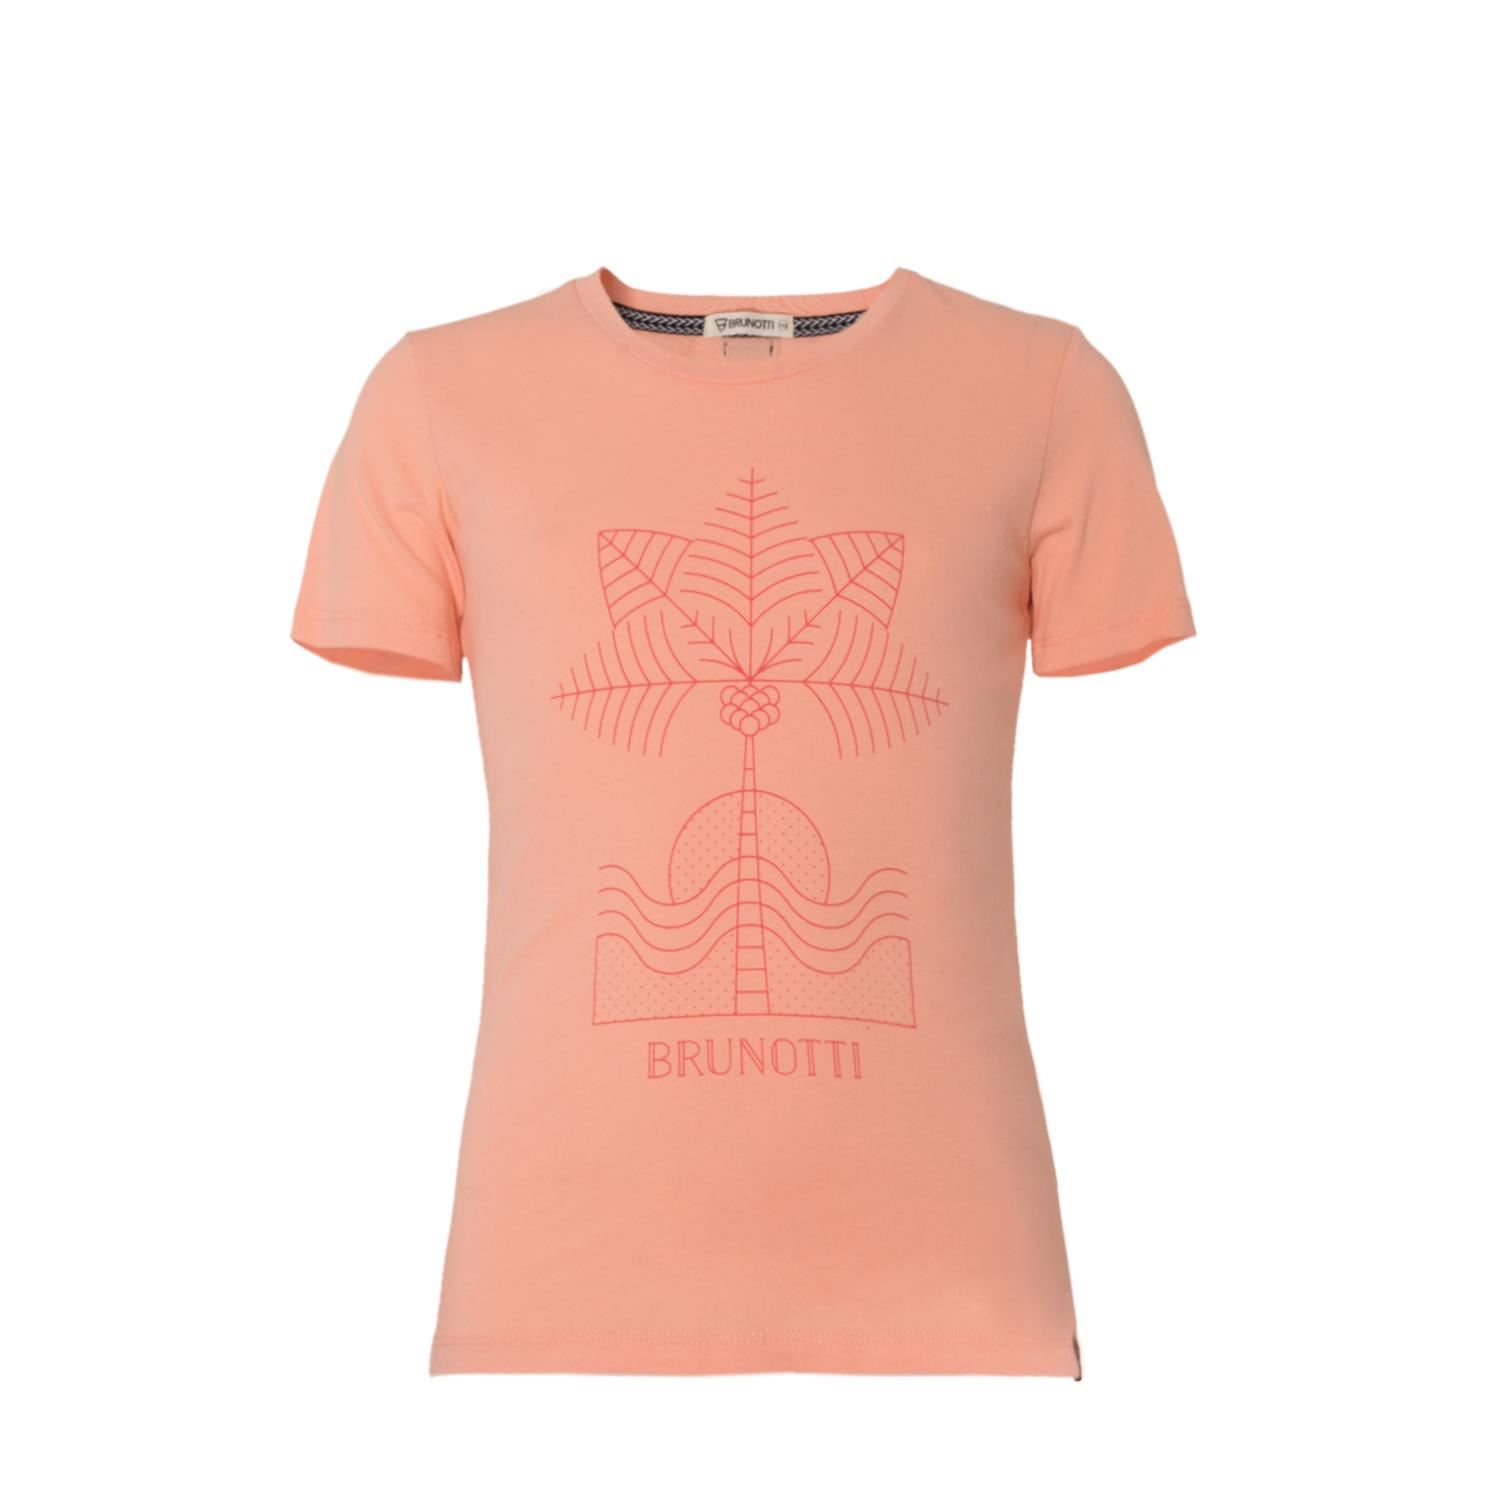 Brunotti Oaky JR Girls T-shirt